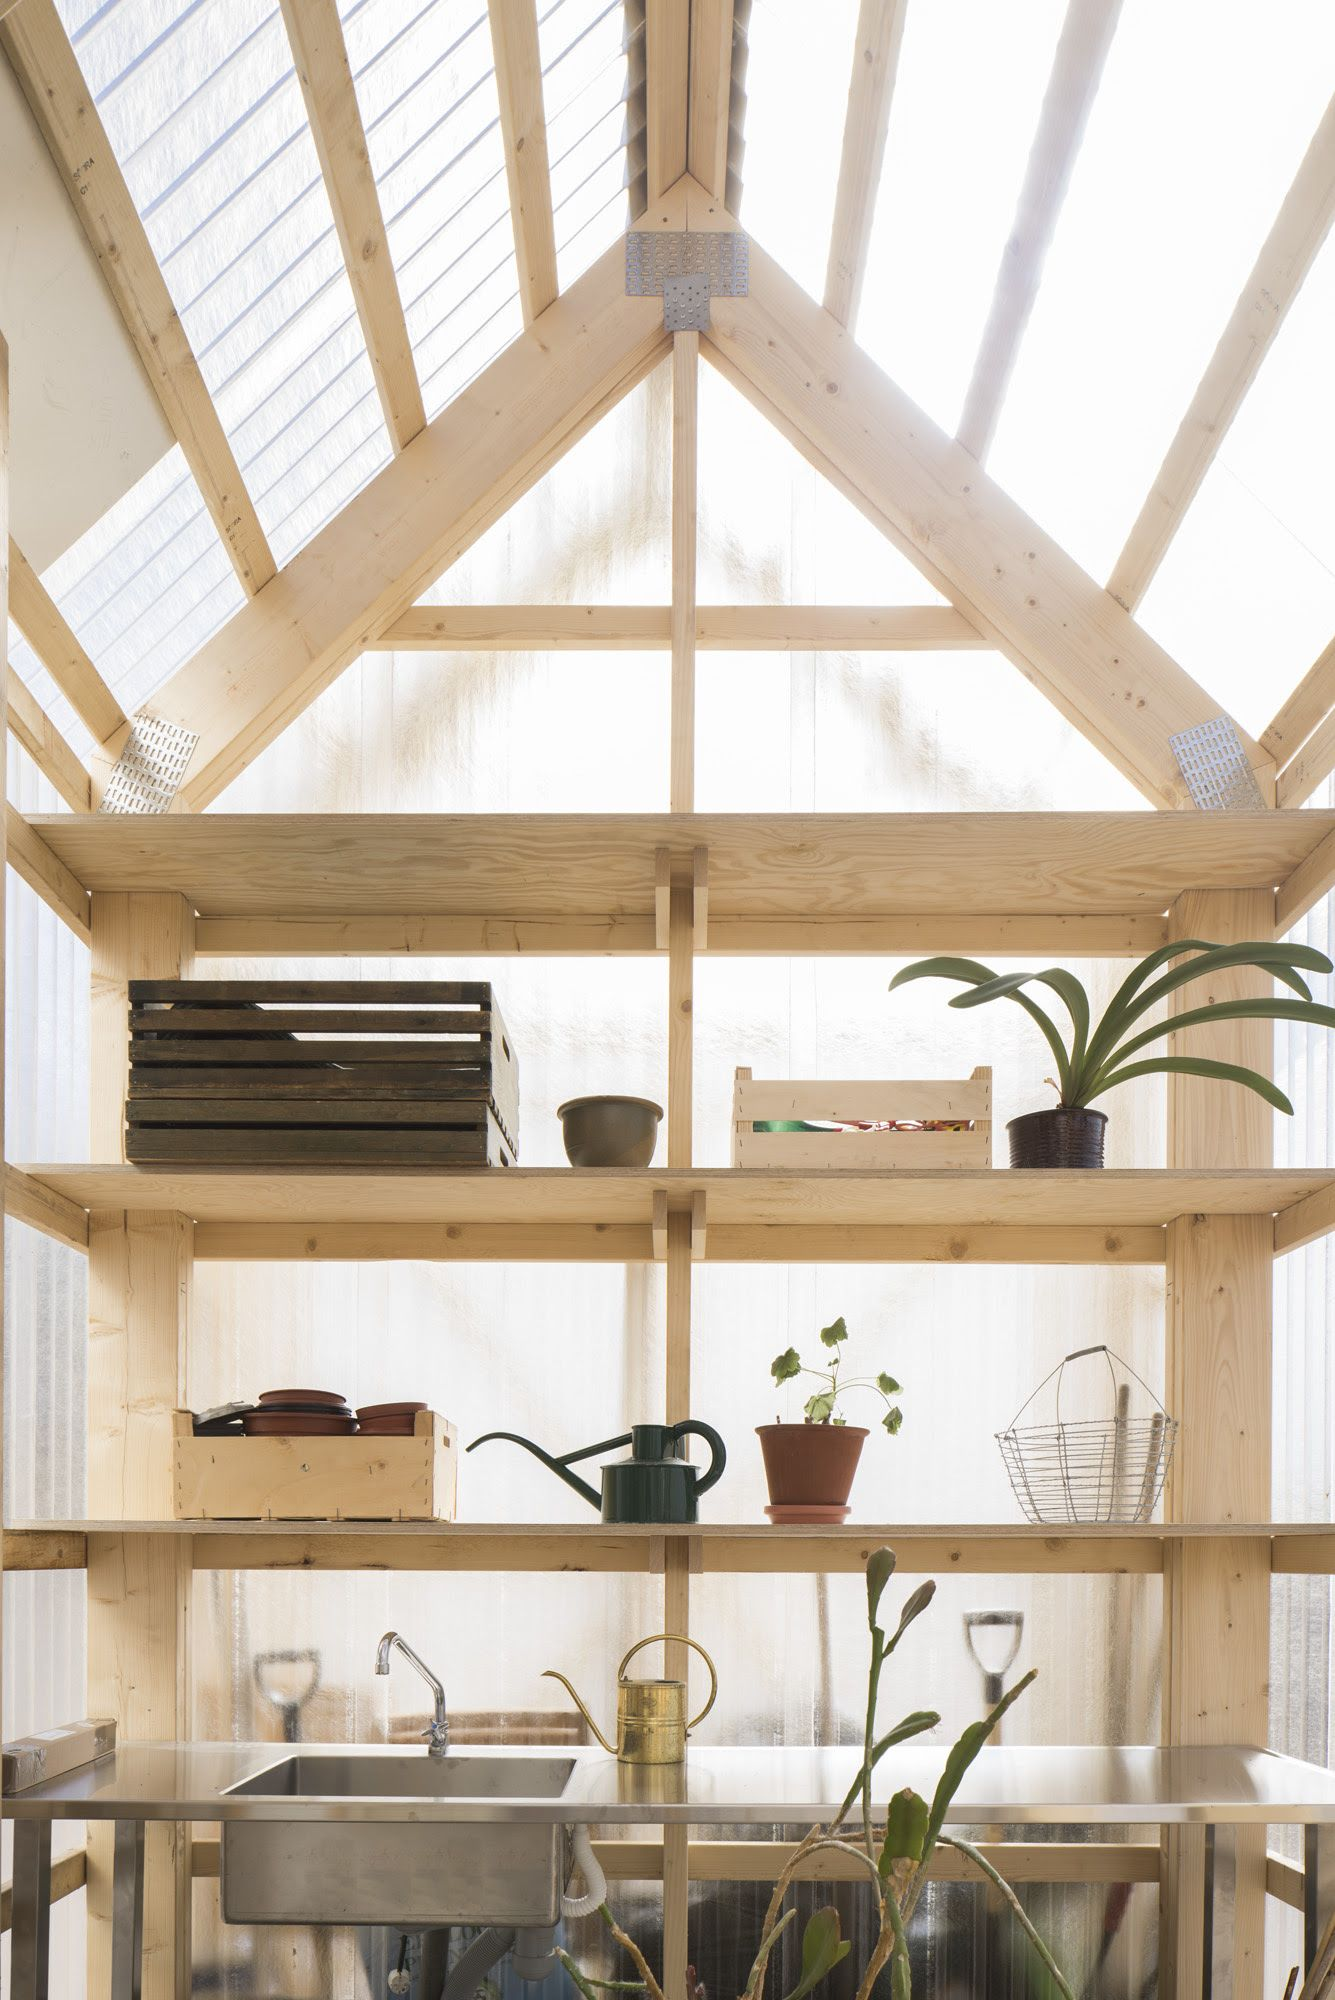 A greenhouse with translucent corrugated polycarbonate walls and exposed wood frame in forstberg lings house for mother